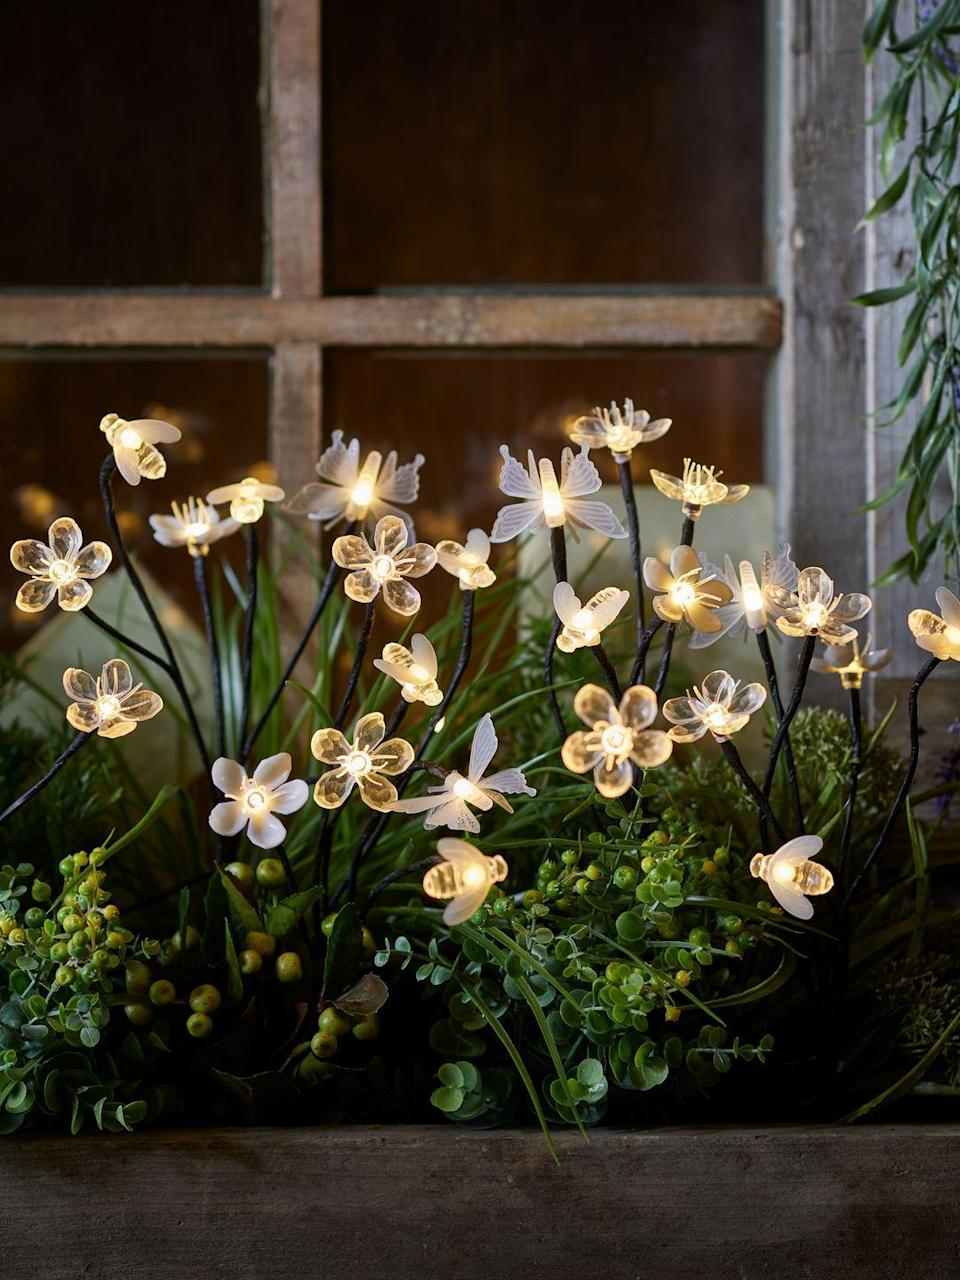 """<p>Buy stake lights to scatter amongst shrubs, place on your lawn, or stick into window boxes for instant wow factor. These are pretty inexpensive and they add a wonderful decorative touch to your garden, however small it is. </p><p>With solar lights, just place it within a sunny spot in your garden to enable a full day's charge. As evening falls, the lights will automatically shine bright.</p><p><strong>Pictured: </strong>Flower, Bee & Butterfly Solar Stake Lights, <a href=""""https://go.redirectingat.com?id=127X1599956&url=https%3A%2F%2Fwww.lights4fun.co.uk%2Fproducts%2Fflower-bee-butterfly-solar-stake-lights&sref=https%3A%2F%2Fwww.redonline.co.uk%2Finteriors%2Feditors_choice%2Fg35933369%2Fgarden-ideas-on-a-budget%2F"""" rel=""""nofollow noopener"""" target=""""_blank"""" data-ylk=""""slk:Lights4Fun"""" class=""""link rapid-noclick-resp"""">Lights4Fun</a> </p>"""